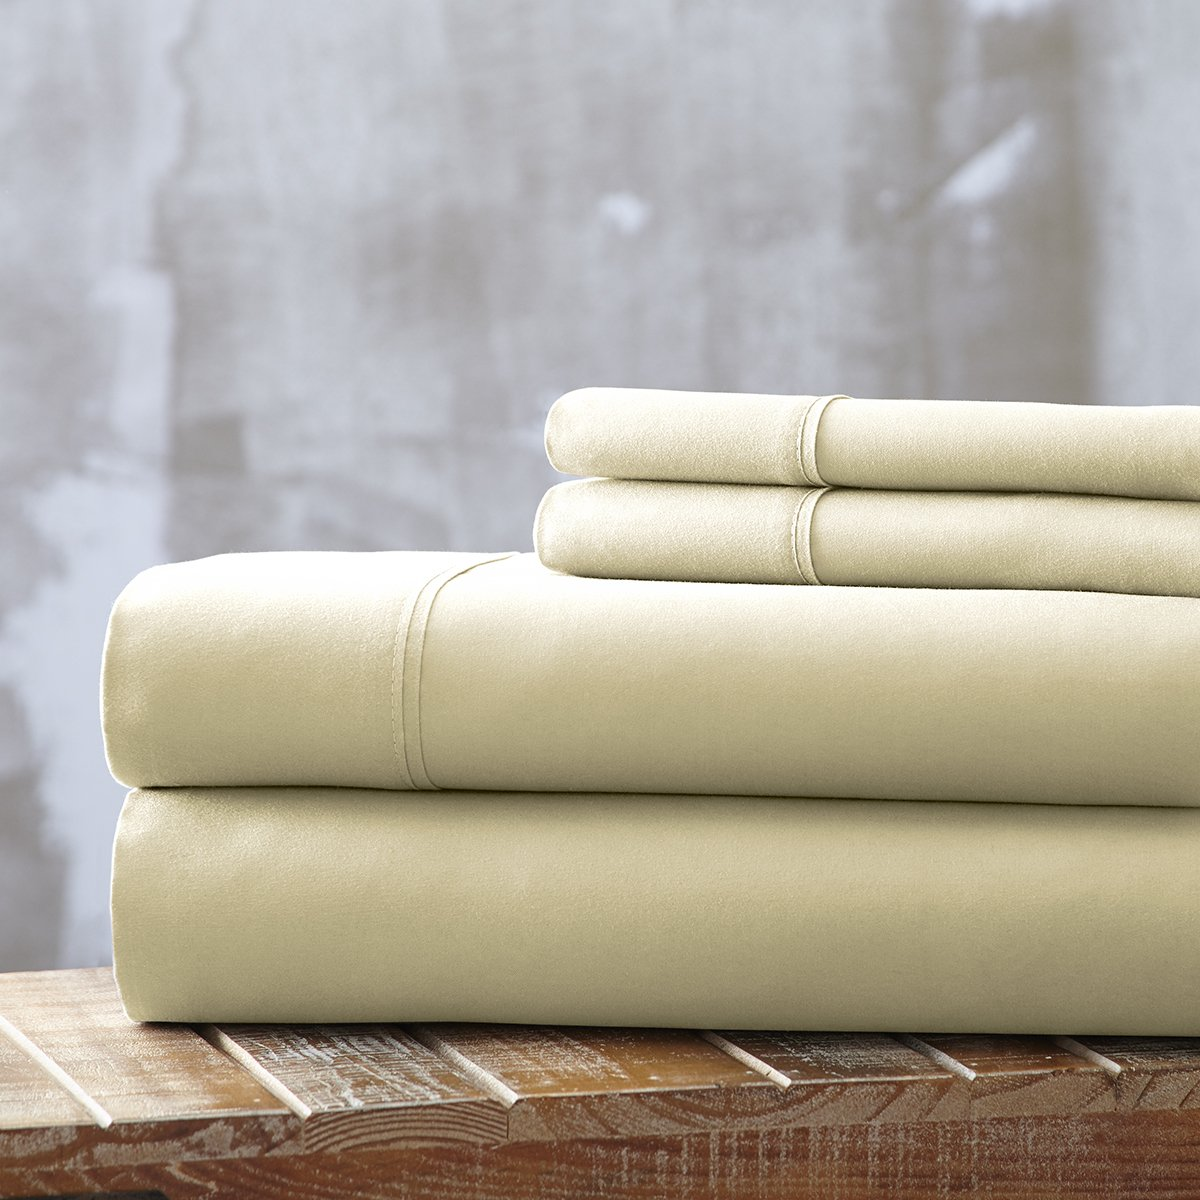 Spirit Linen, Inc Hotel 5th Ave EE-QUEEN-IVORY-4PC Queen Ivory Everyday Essentials 1800 Series 4Pc Sheet Set by Spirit Linen, Inc Hotel 5th Ave